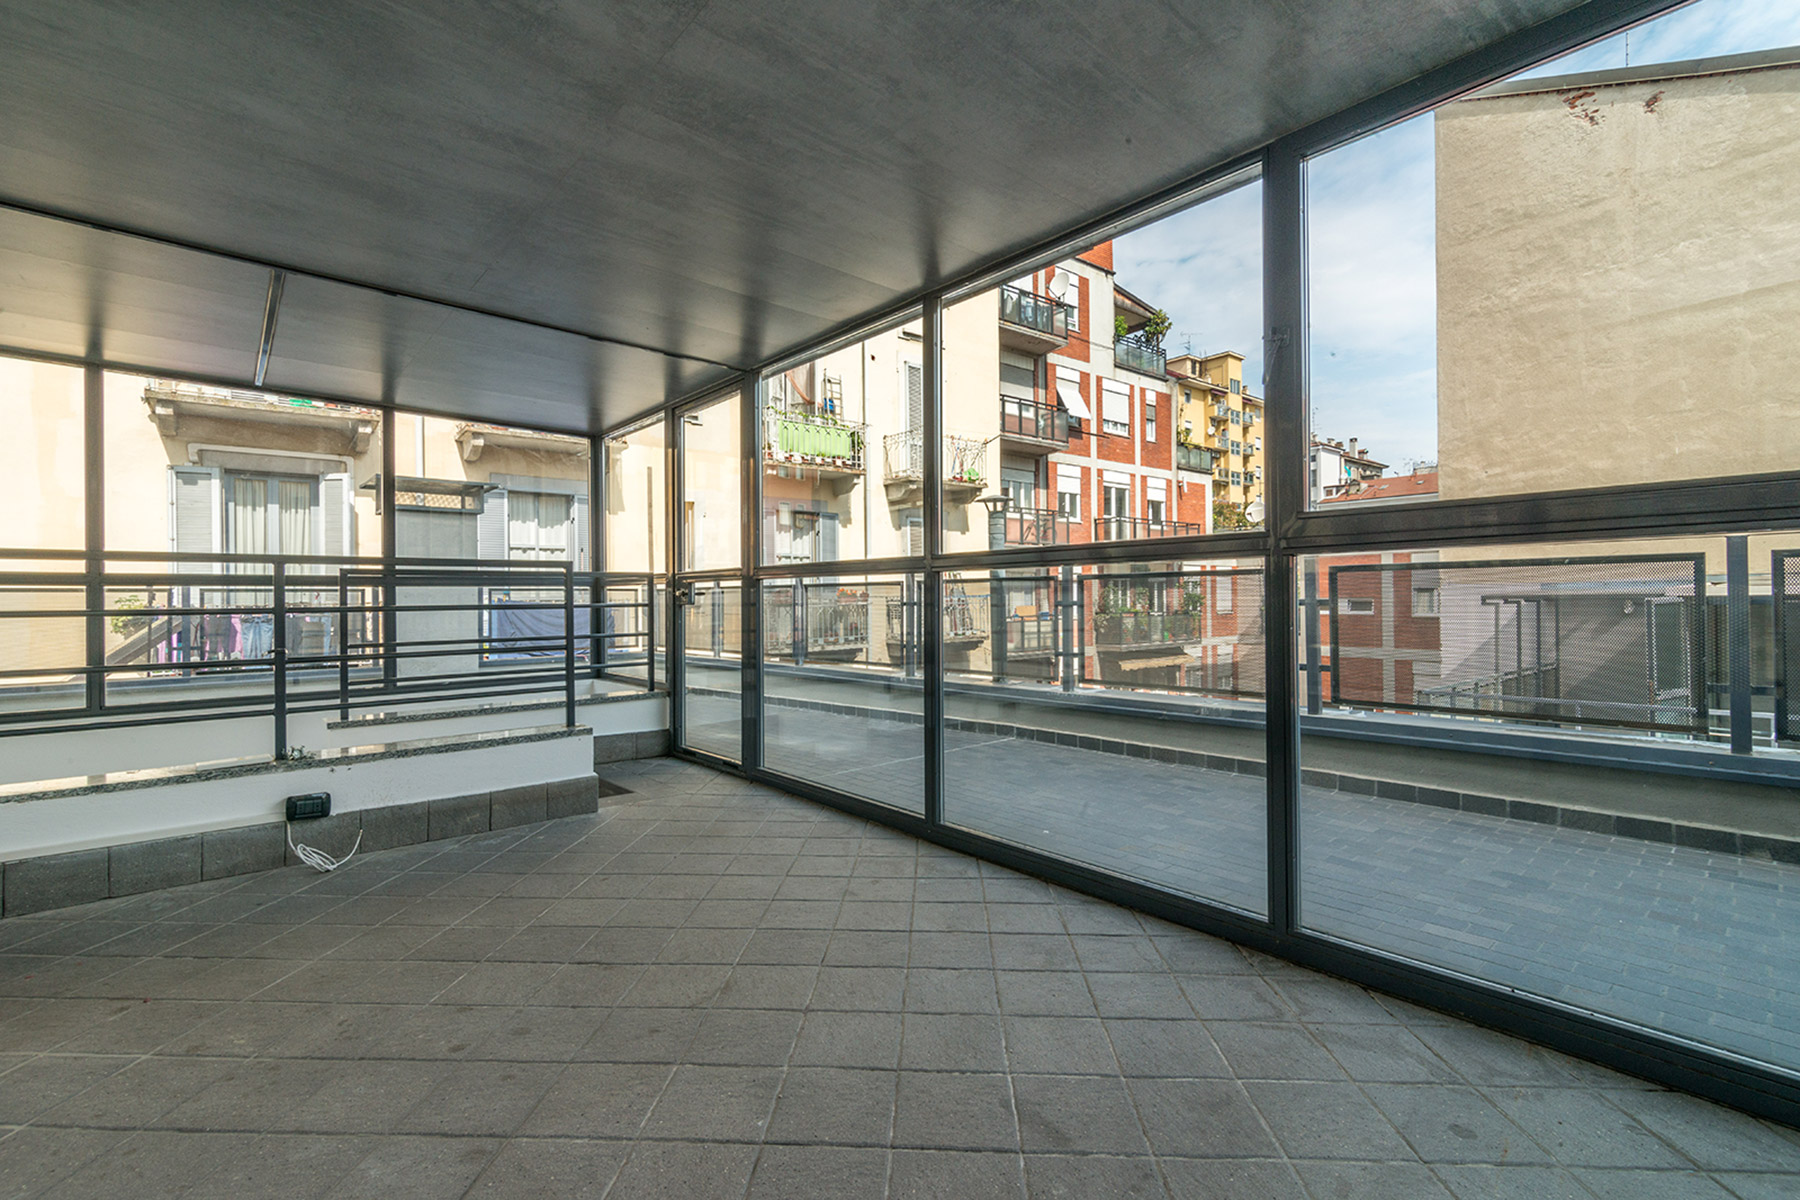 Additional photo for property listing at Particular apartament in exclusive contest viale Abruzzi Milano, Milan 20131 Italie